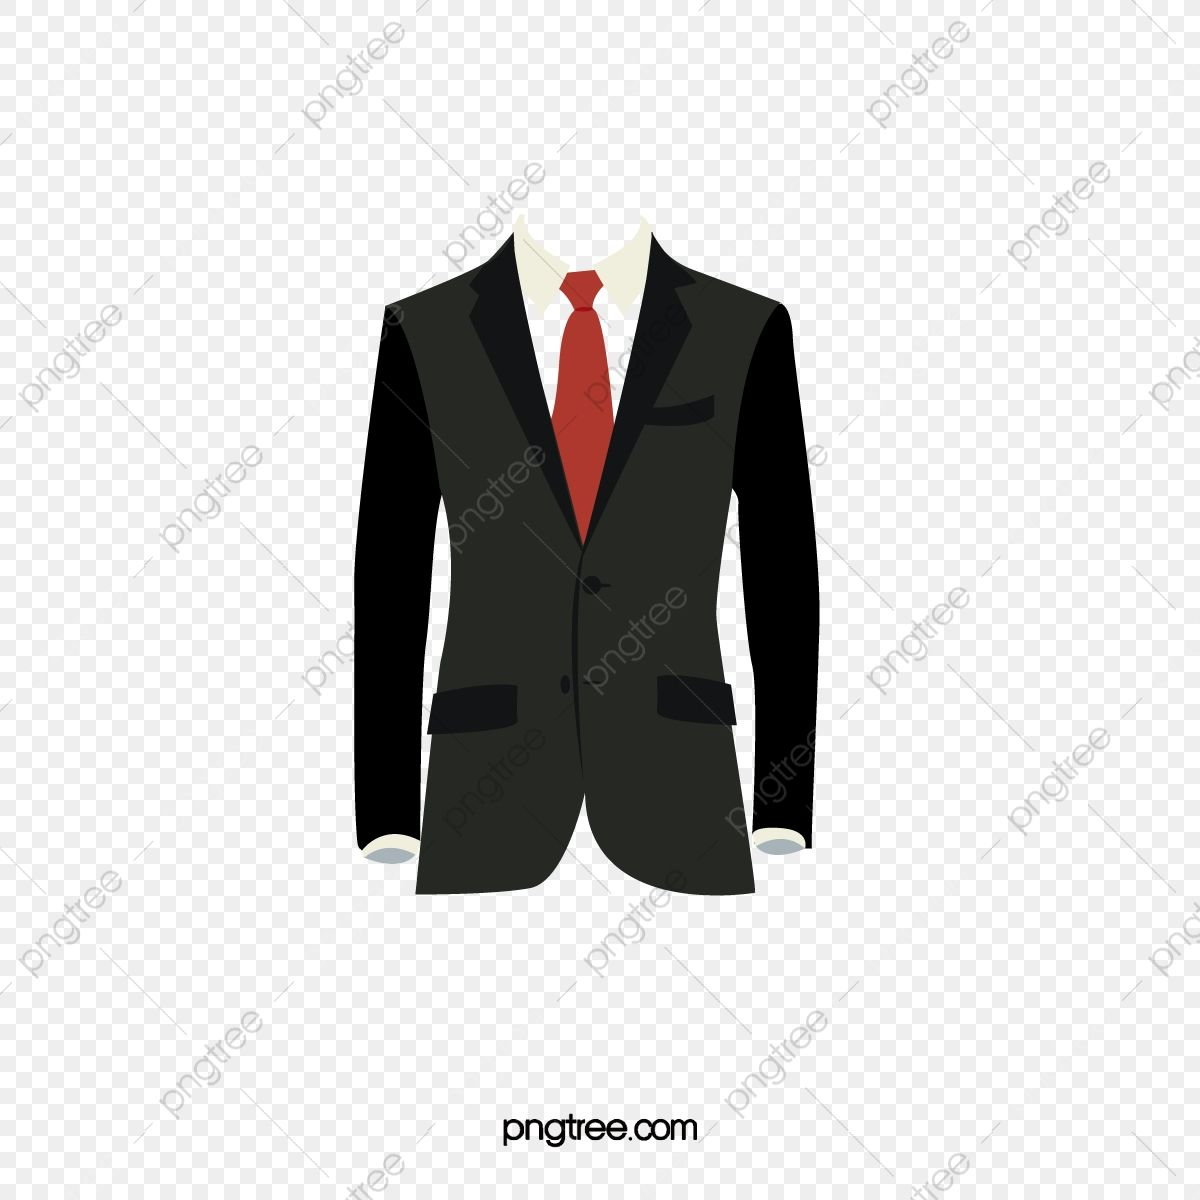 Black Suit Menamp 039 S Tops Png And Vector With Transparent Background For Free Download Mens Outfits Black Suits Mens Fashion Suits Business